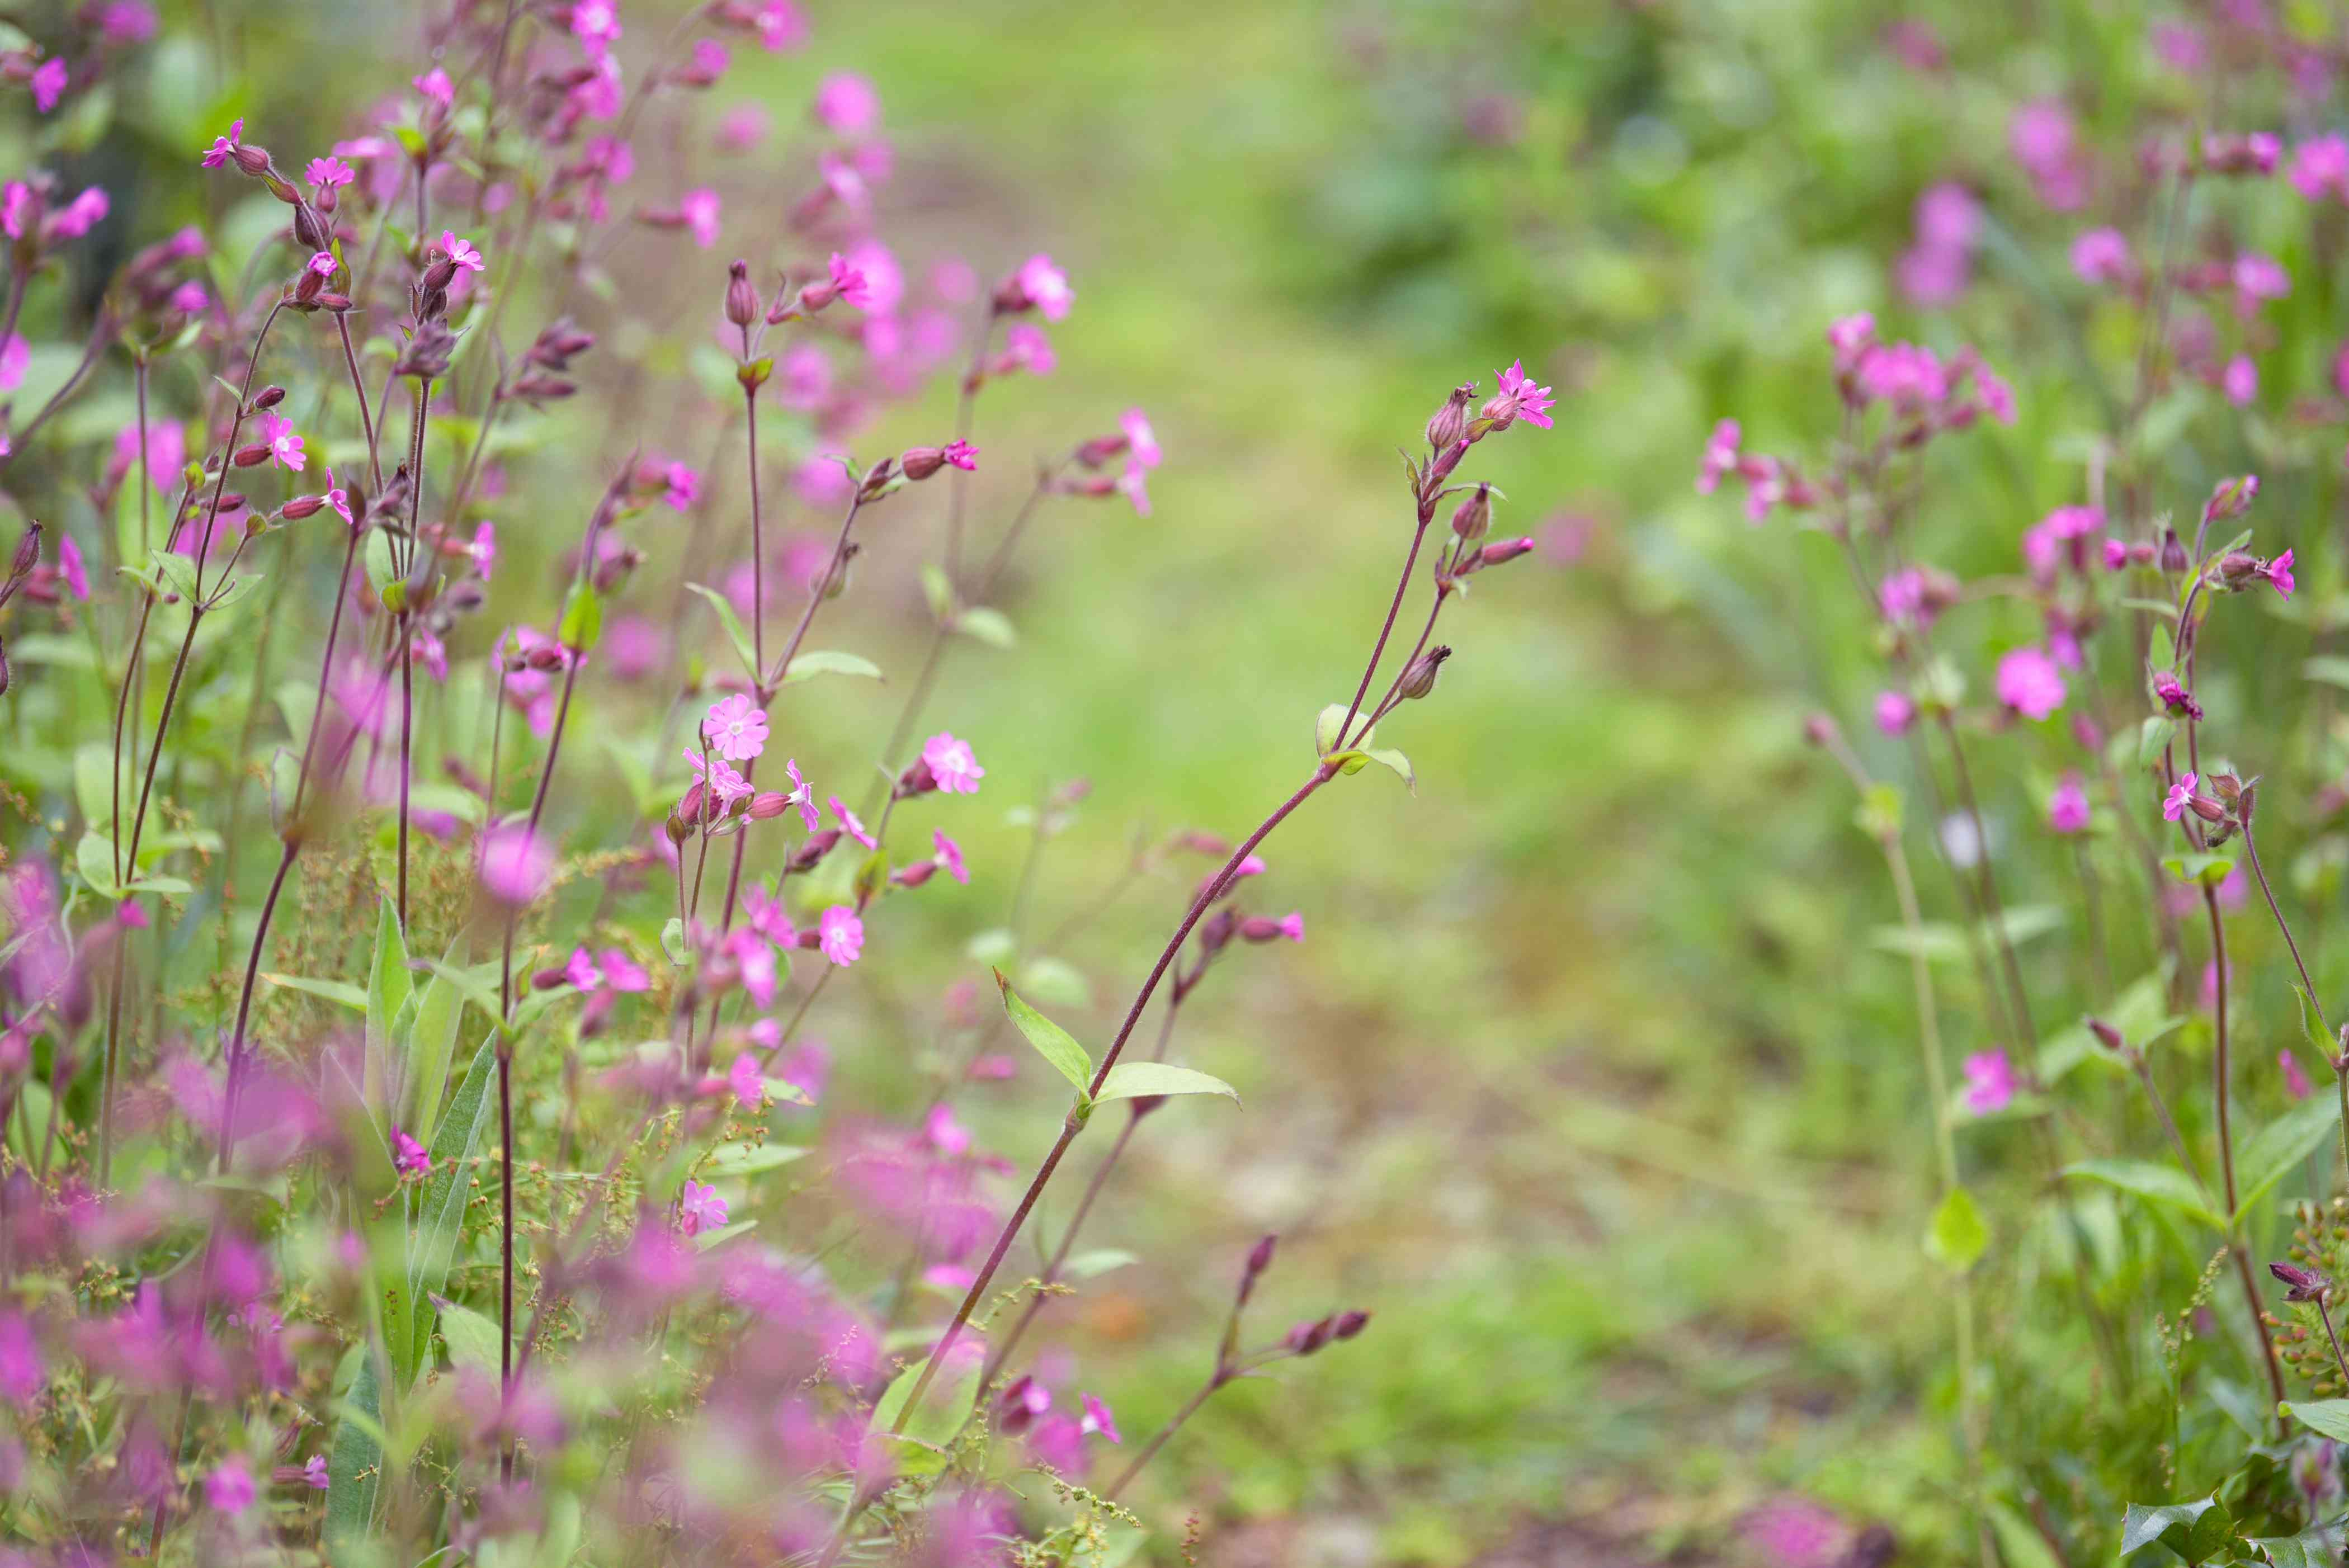 Red campion plant with small pink flowers and buds on thin dark red stem in garden